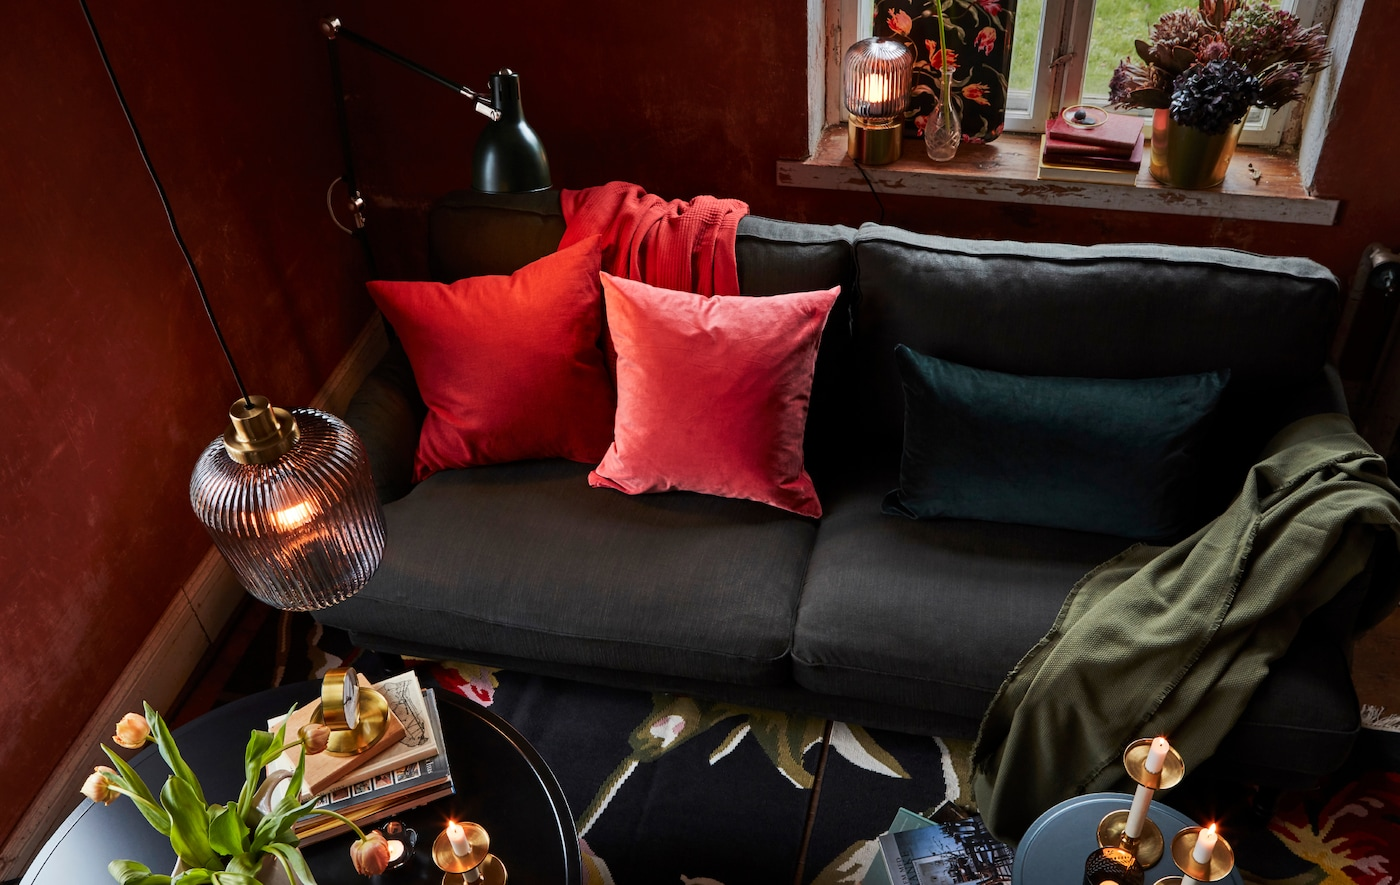 In a living room, a mix of pendant, floor and table lamps and a sofa with colourful cushions help set a warm, cosy mood.